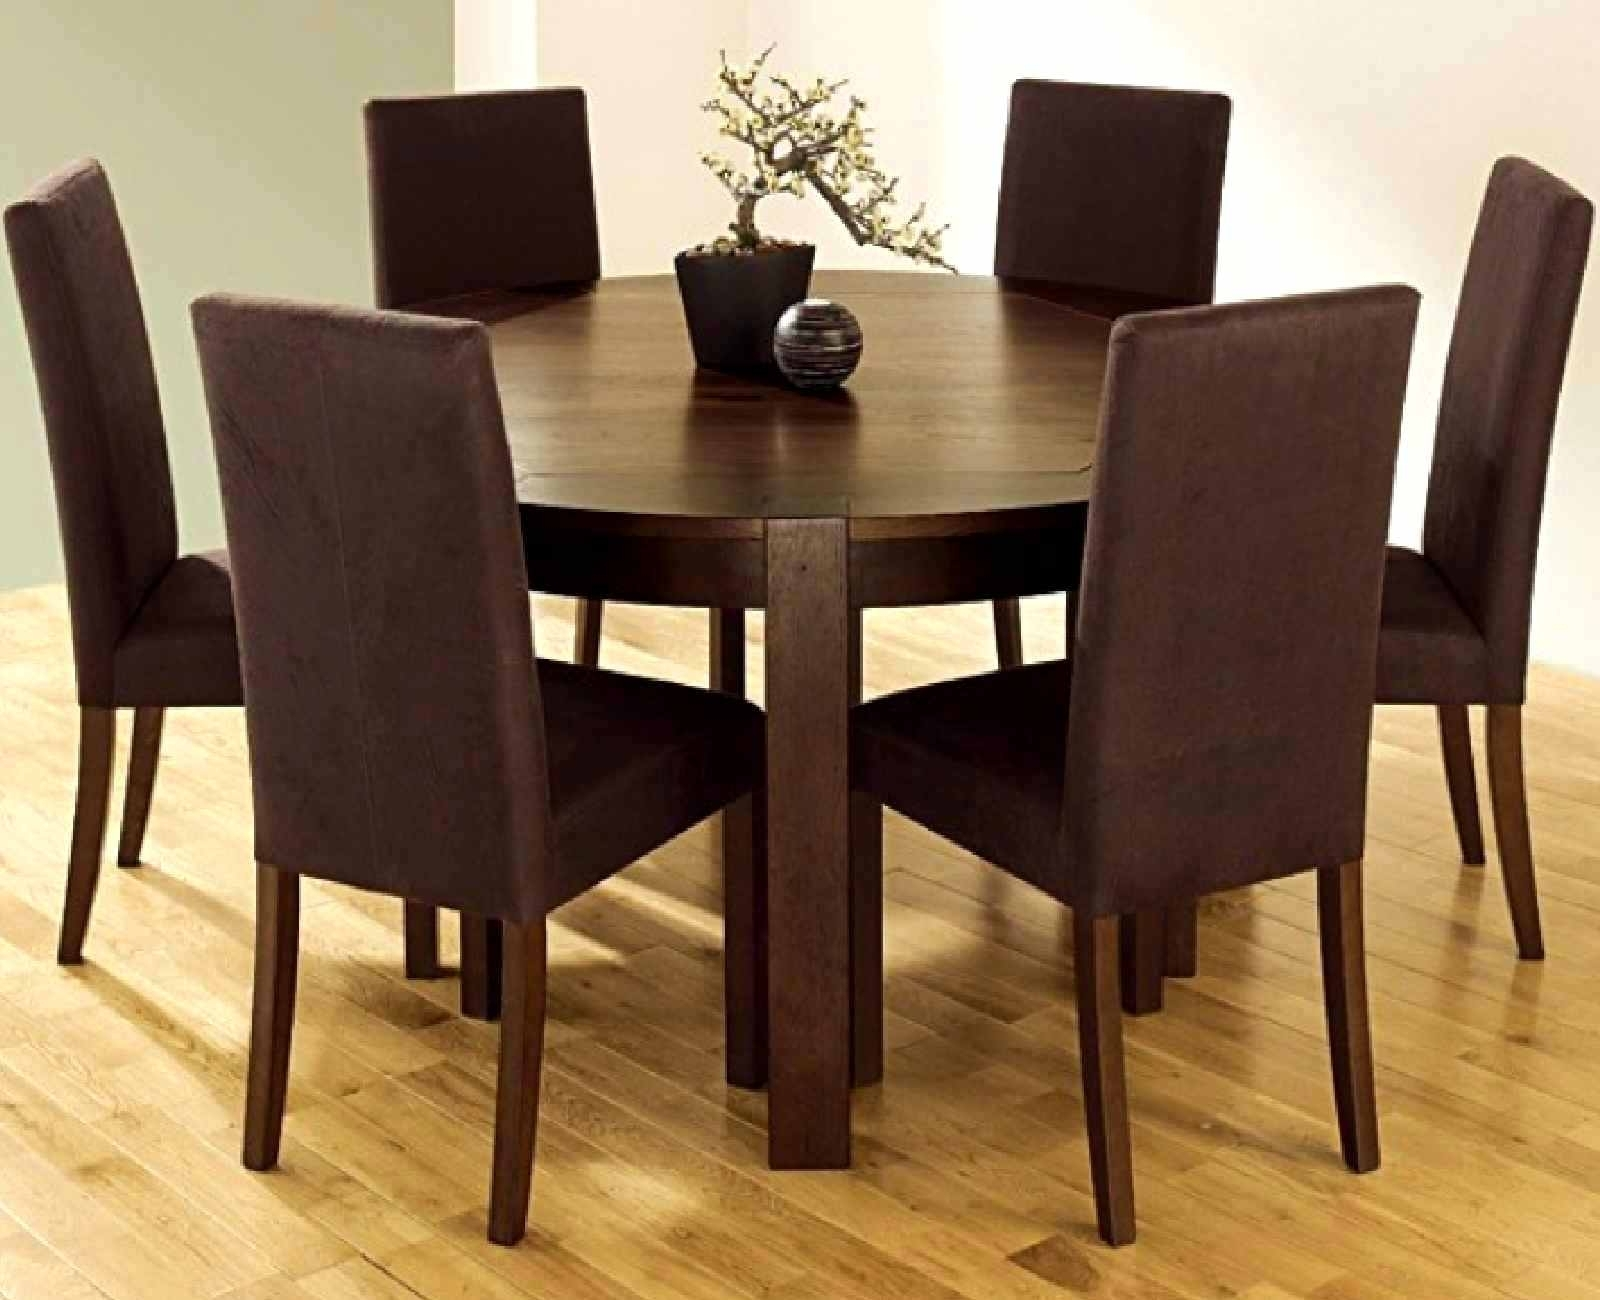 Enjoyable Dining Table With Six Chairs Ideas Dining Table Round Intended For Well Known Dining Tables And Six Chairs (View 15 of 25)